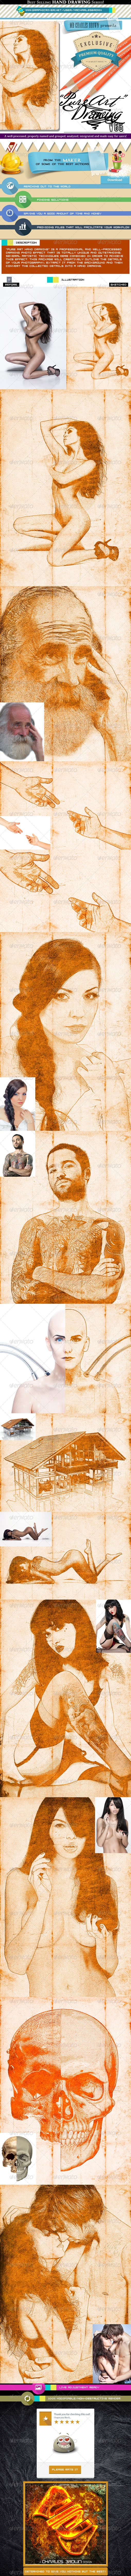 GraphicRiver Pure Art Hand Drawing 65 Prismacolor Pencil 7122052